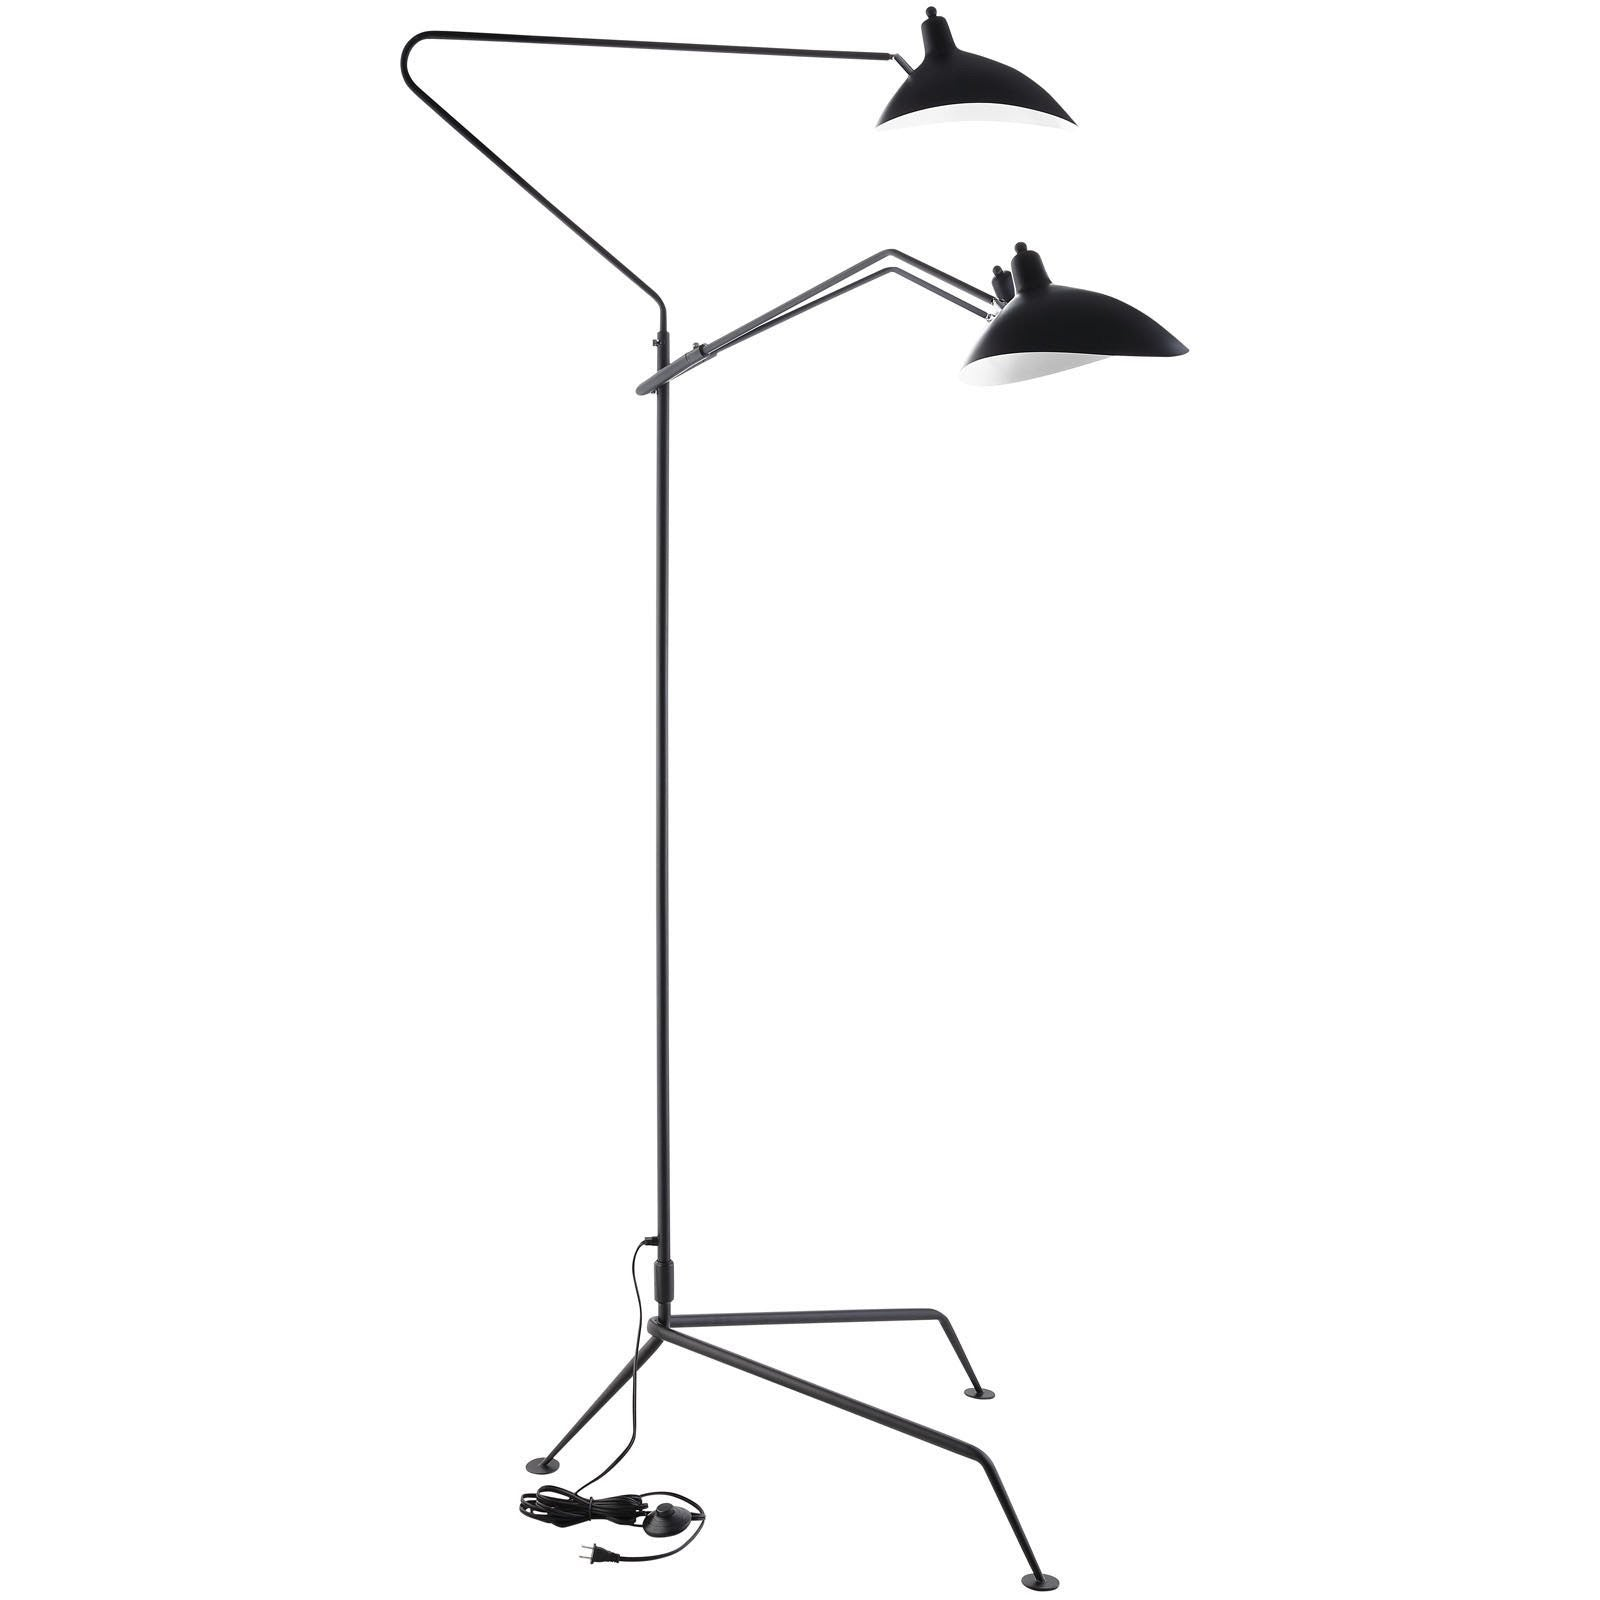 Serge mouille style three arm standing floor lamp emfurn - Serge mouille three arm floor lamp ...